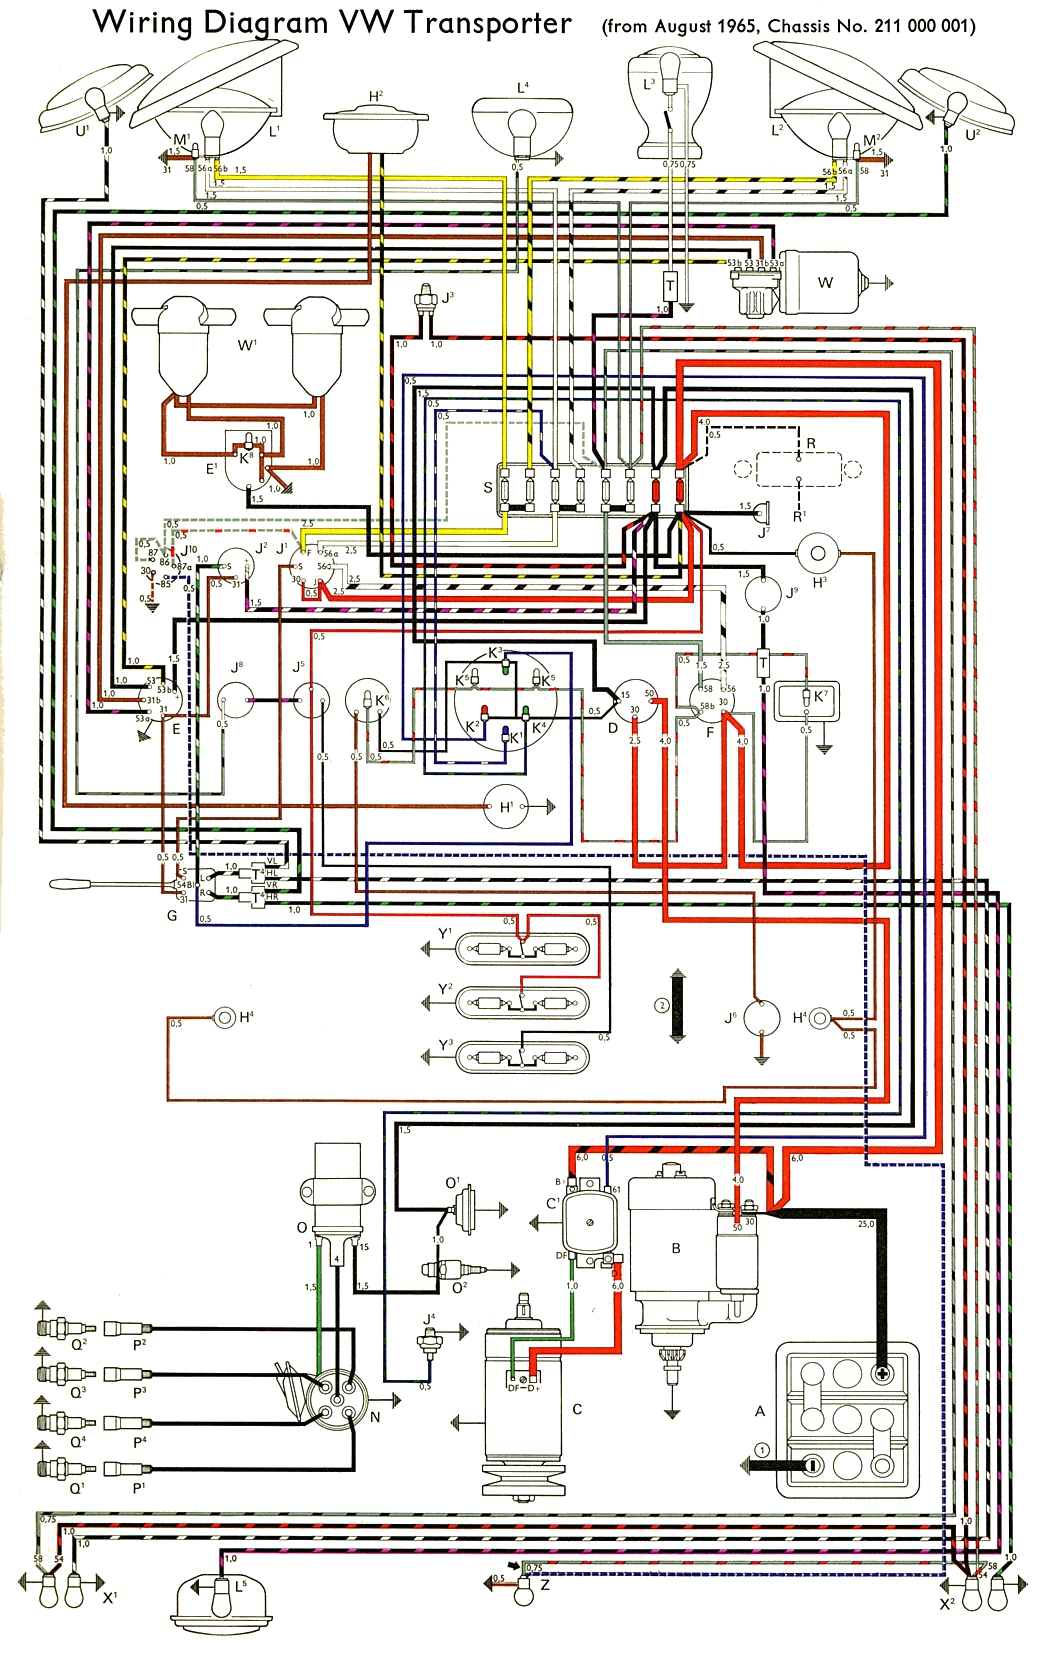 WRG-6981] Vw Super Beetle Fuel Injection Wiring Diagram on